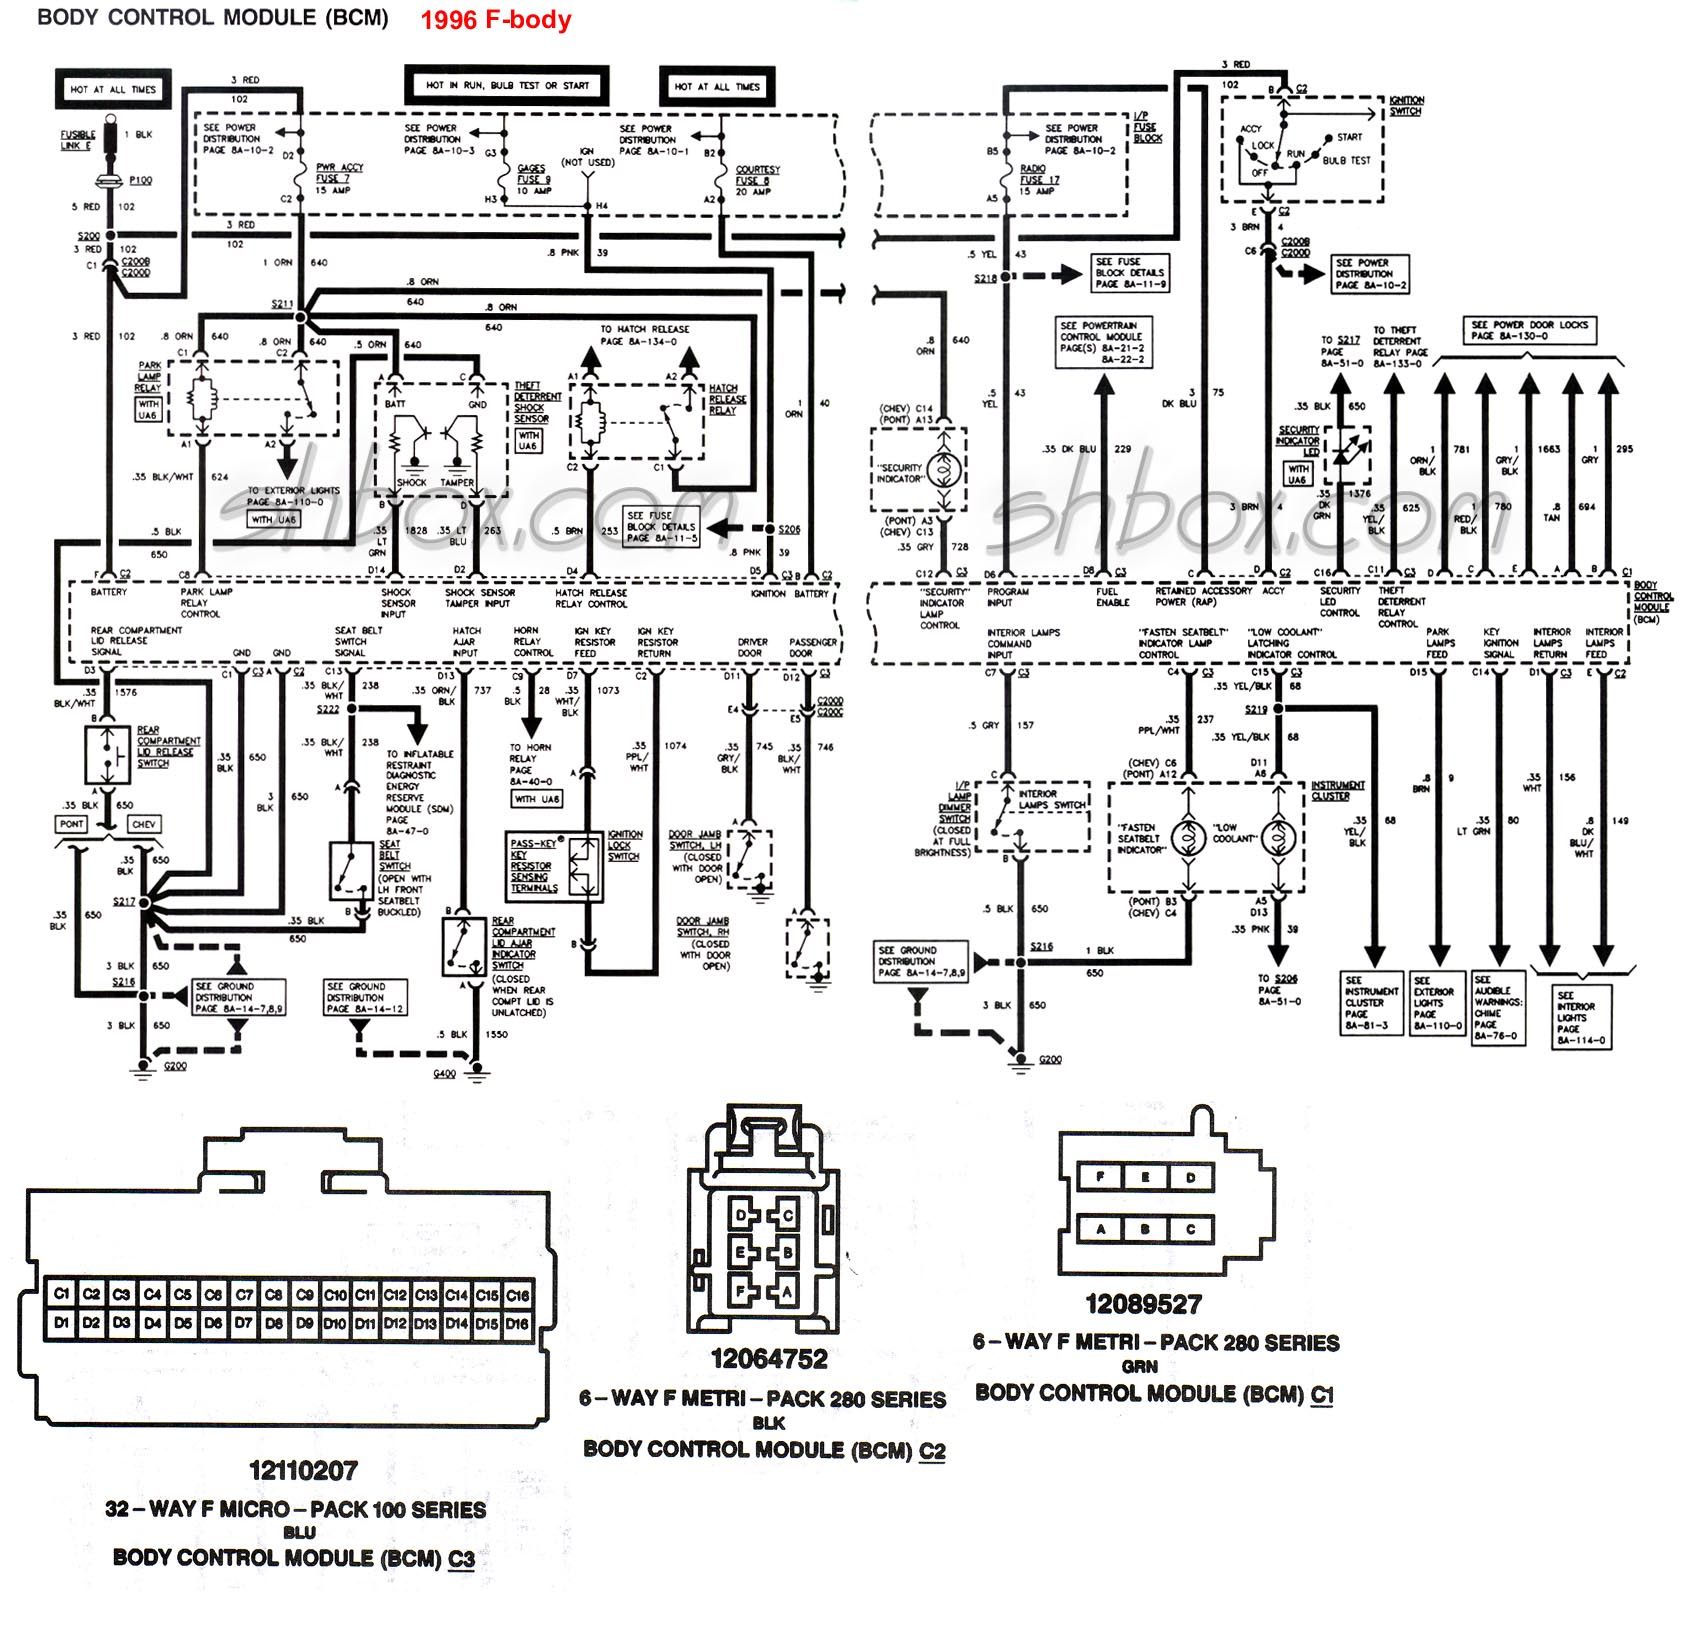 Chevy Colorado Bcm Wiring Diagram besides 2001 Dodge Dakota Fuse Box Diagram Depict together with Chevrolet Monte Carlo 5 7 1983 Specs And Images additionally 85he8 Fuel Pump Relay 2006 Charger 5 7 Liter also 97 Blazer Vacuum Routing Help 93443. on dodge ram tail light wiring